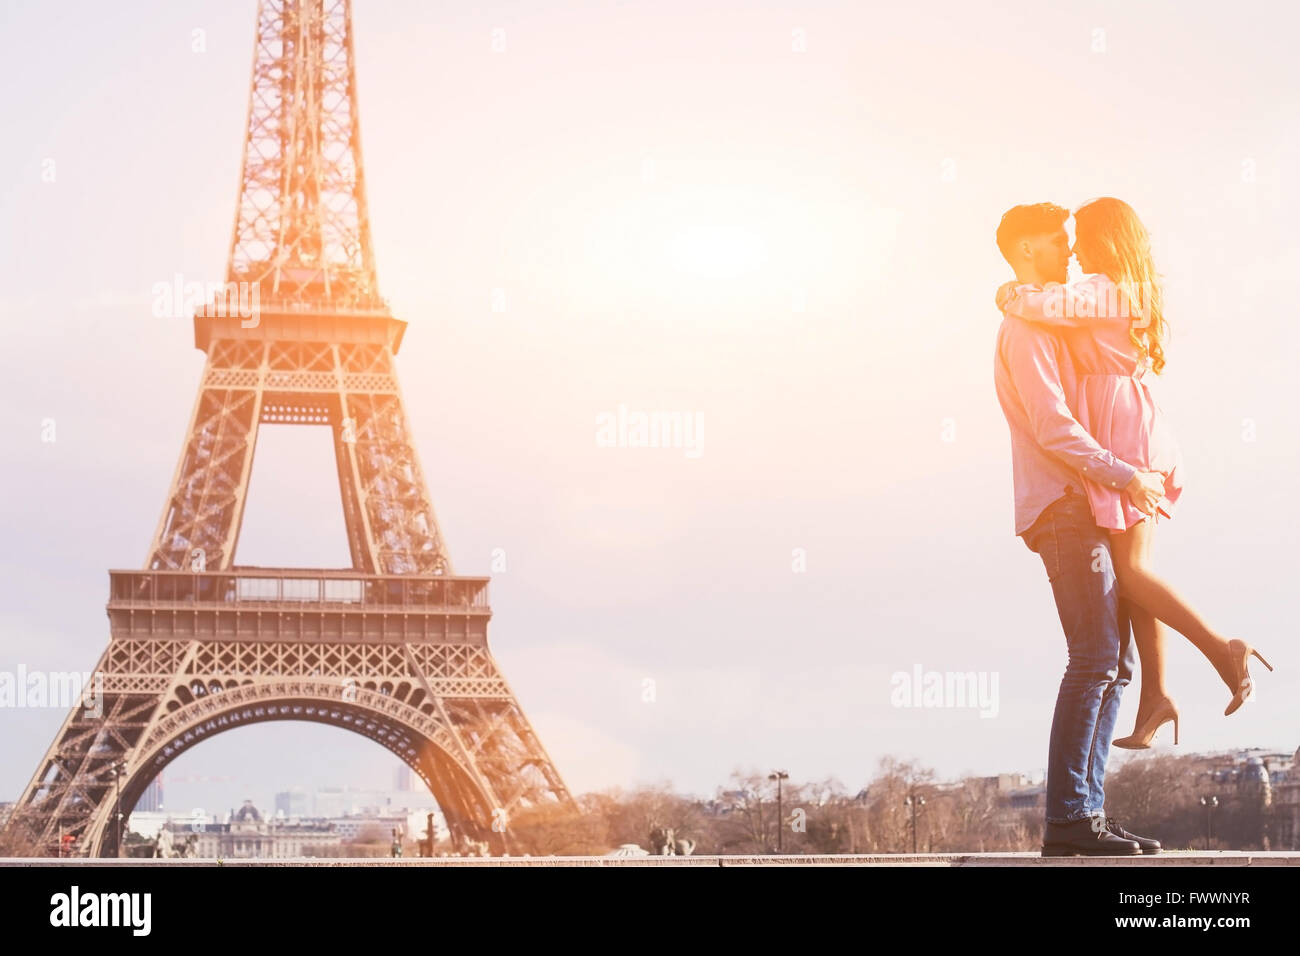 love in the most romantic city - Paris, young couple at Eiffel Tower and vanilla sky - Stock Image